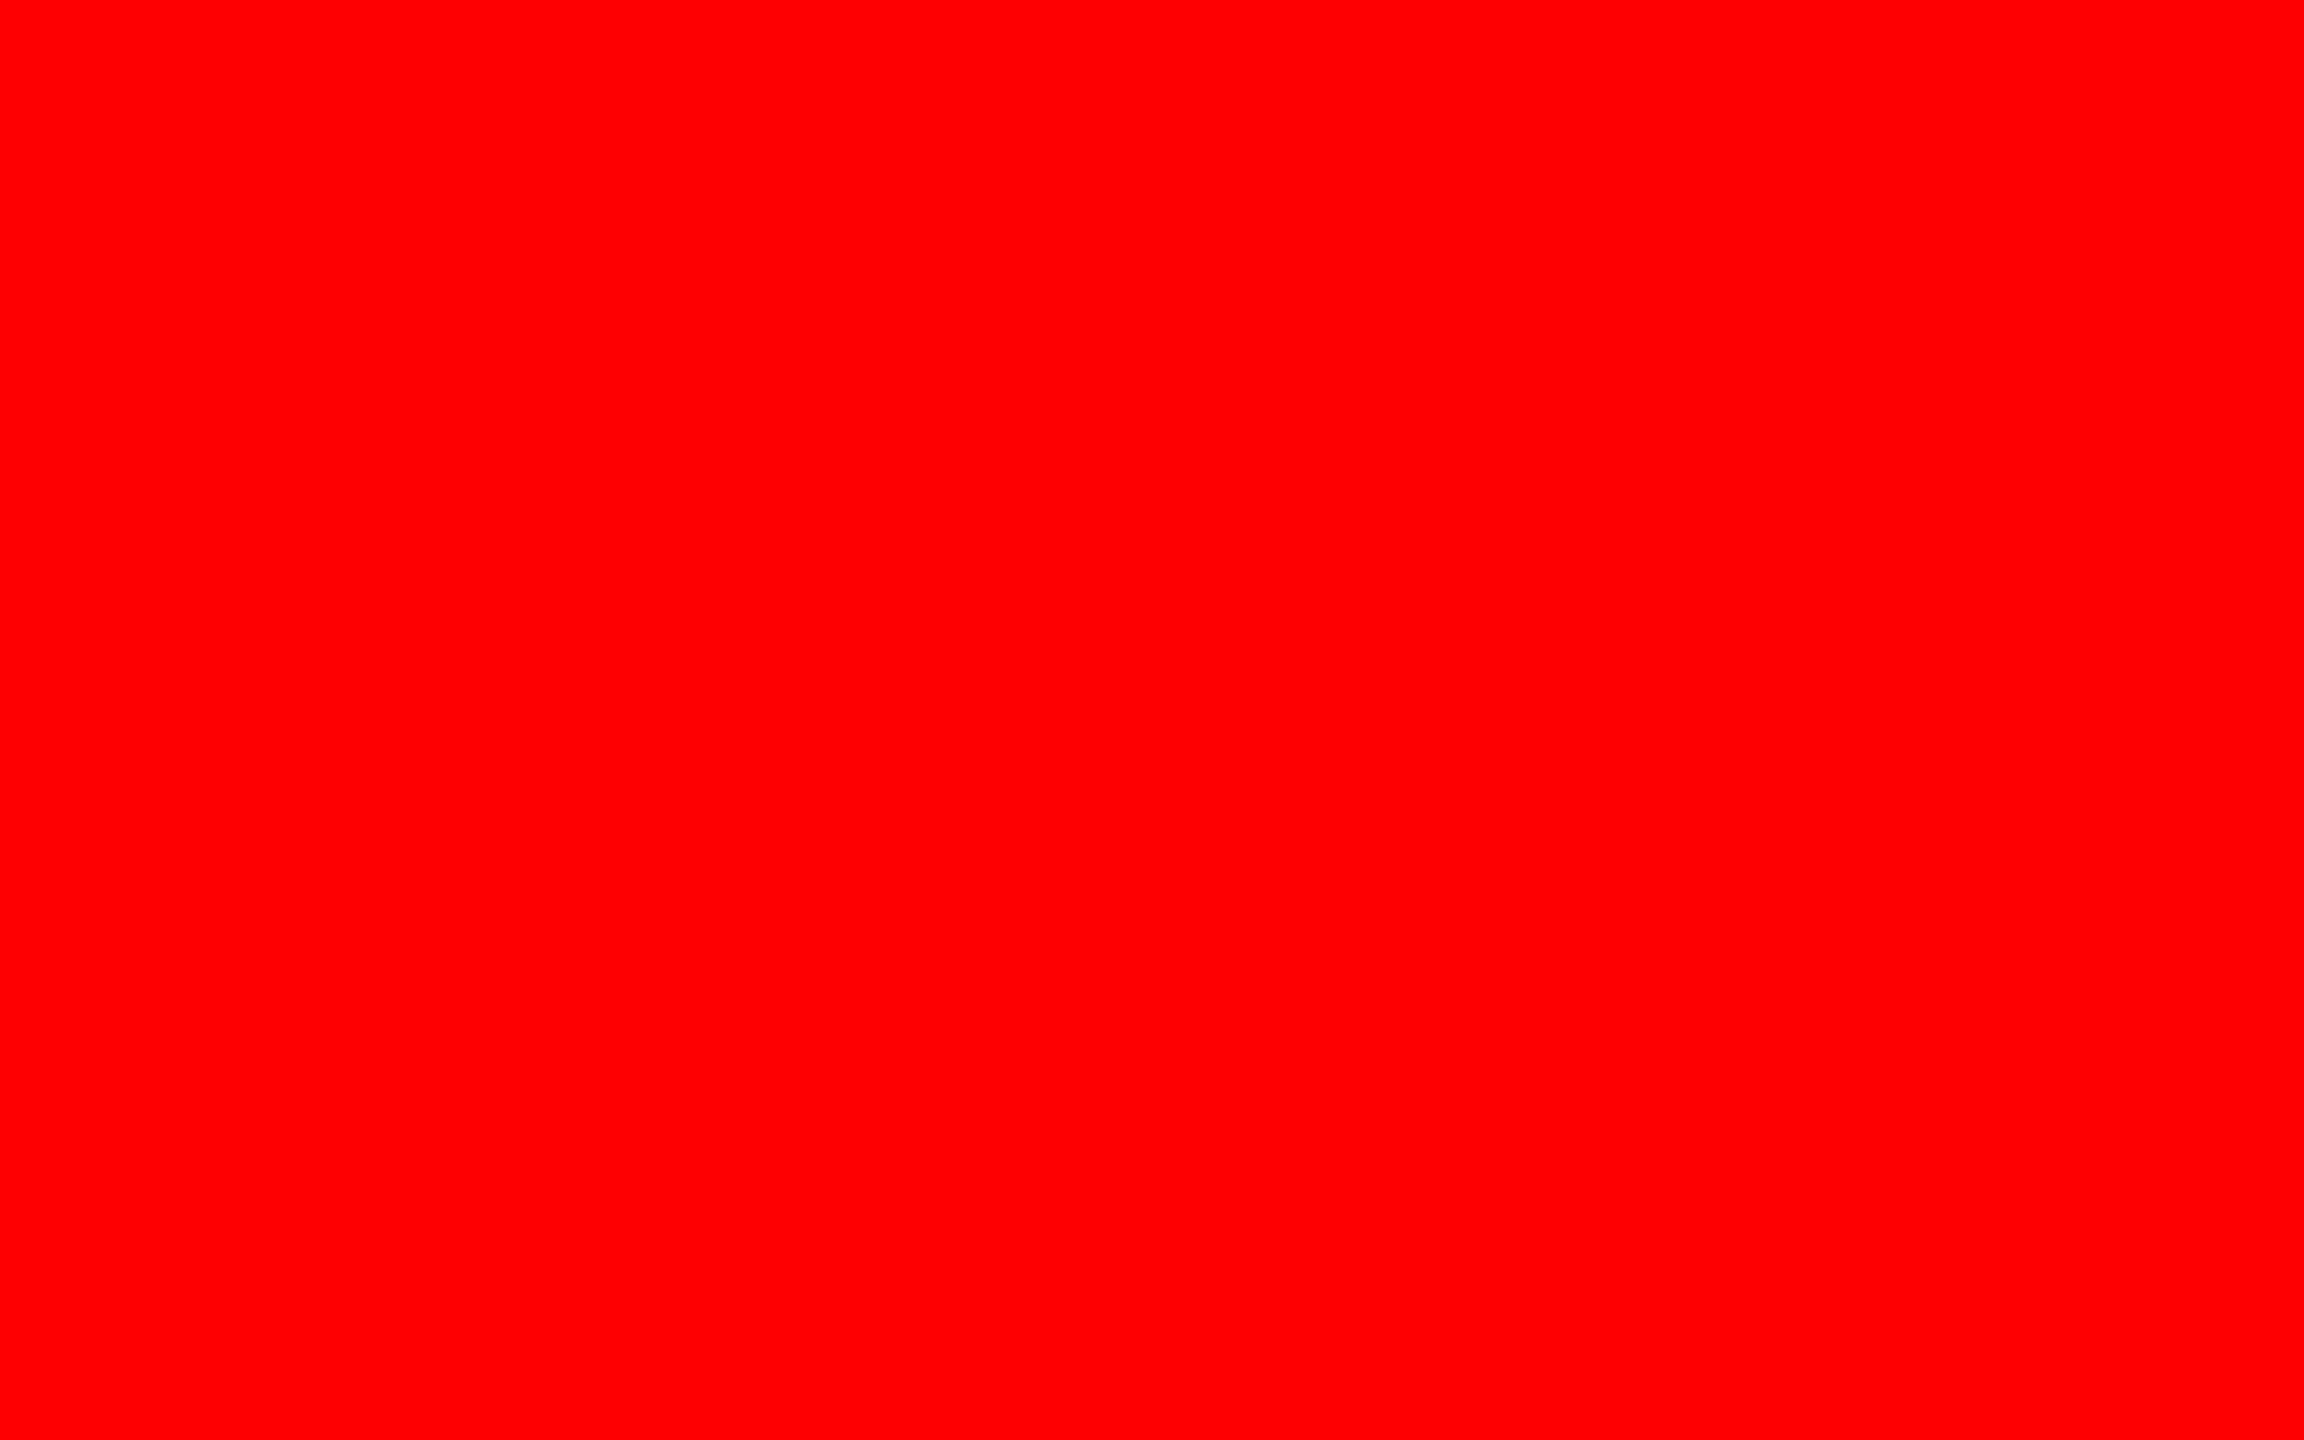 2304x1440 Red Solid Color Background